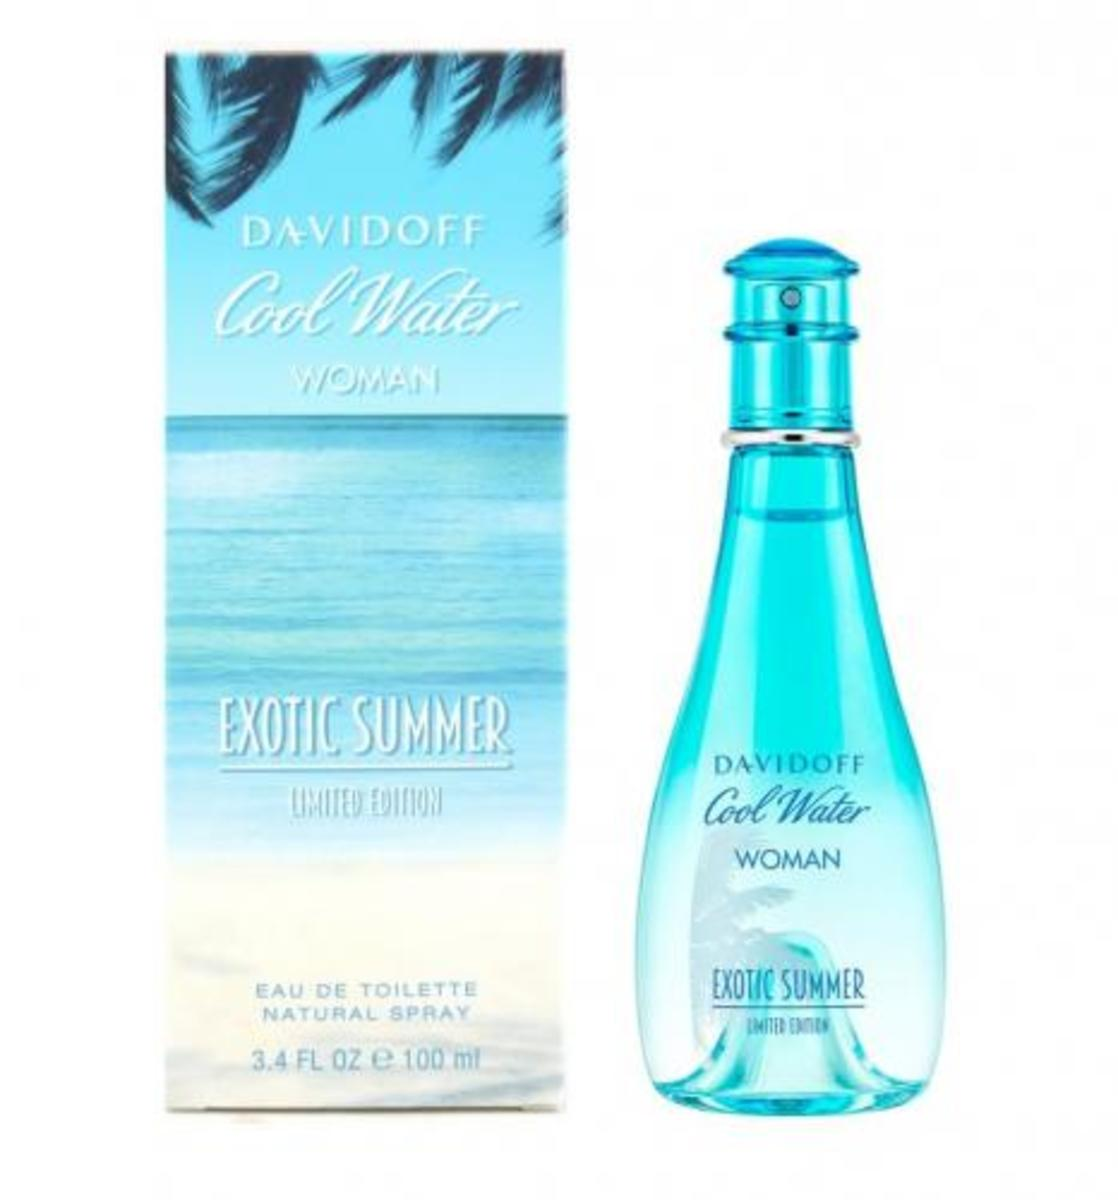 Cool Water Woman Exotic Summer EDT 100ml [Parallel Import]